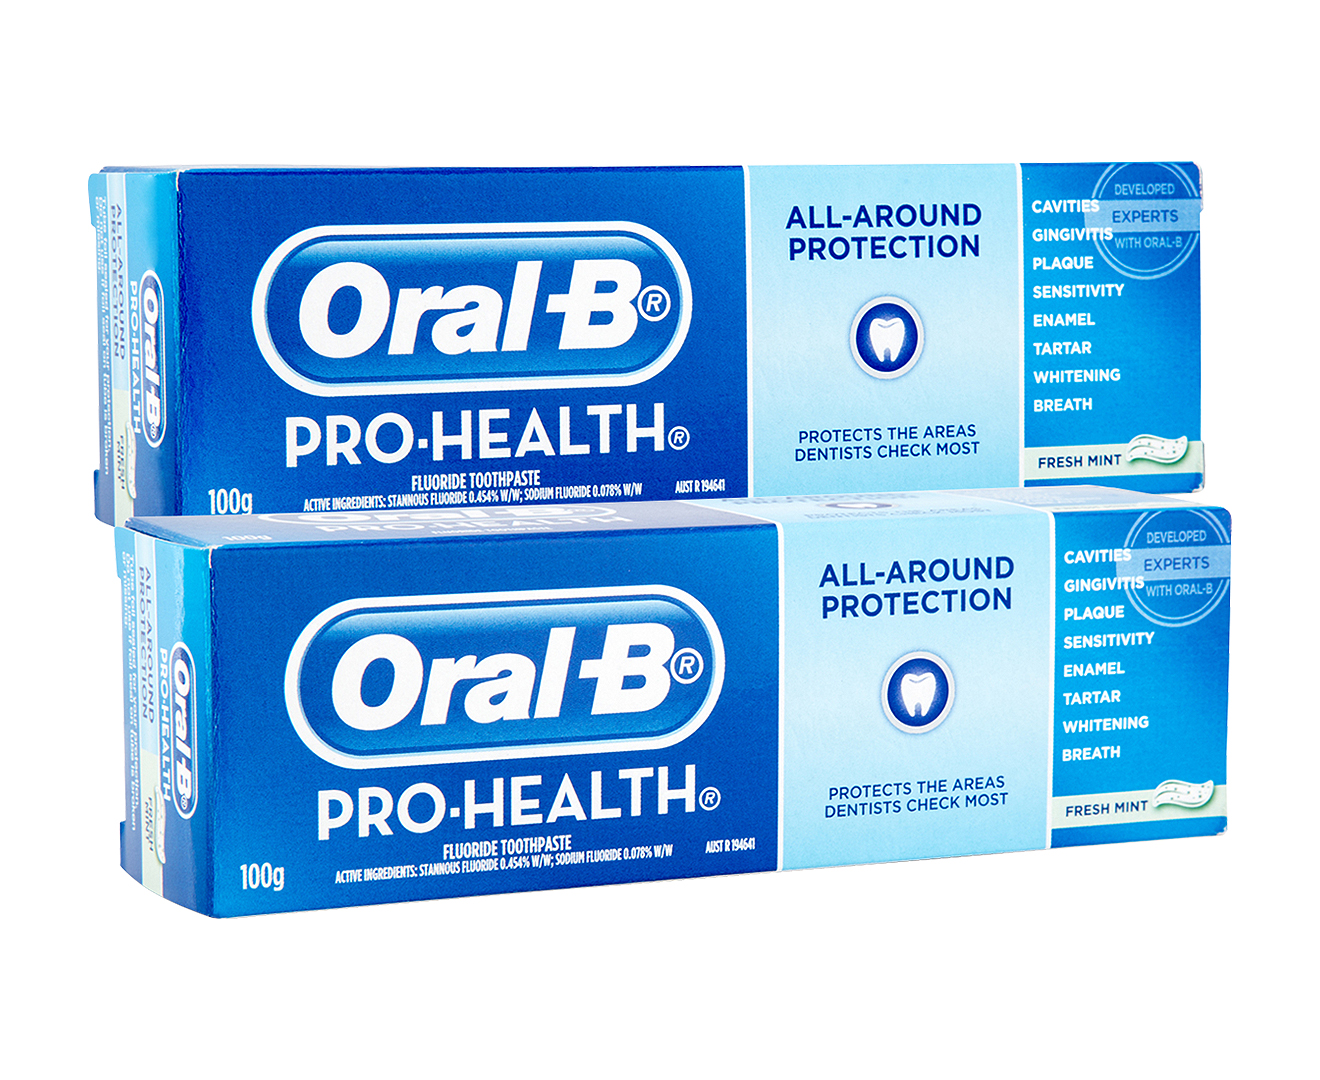 oral b pro health toothpaste Arm & hammer™ extra whitening advance white™ stain protection toothpaste – stain defense™, 120ml.